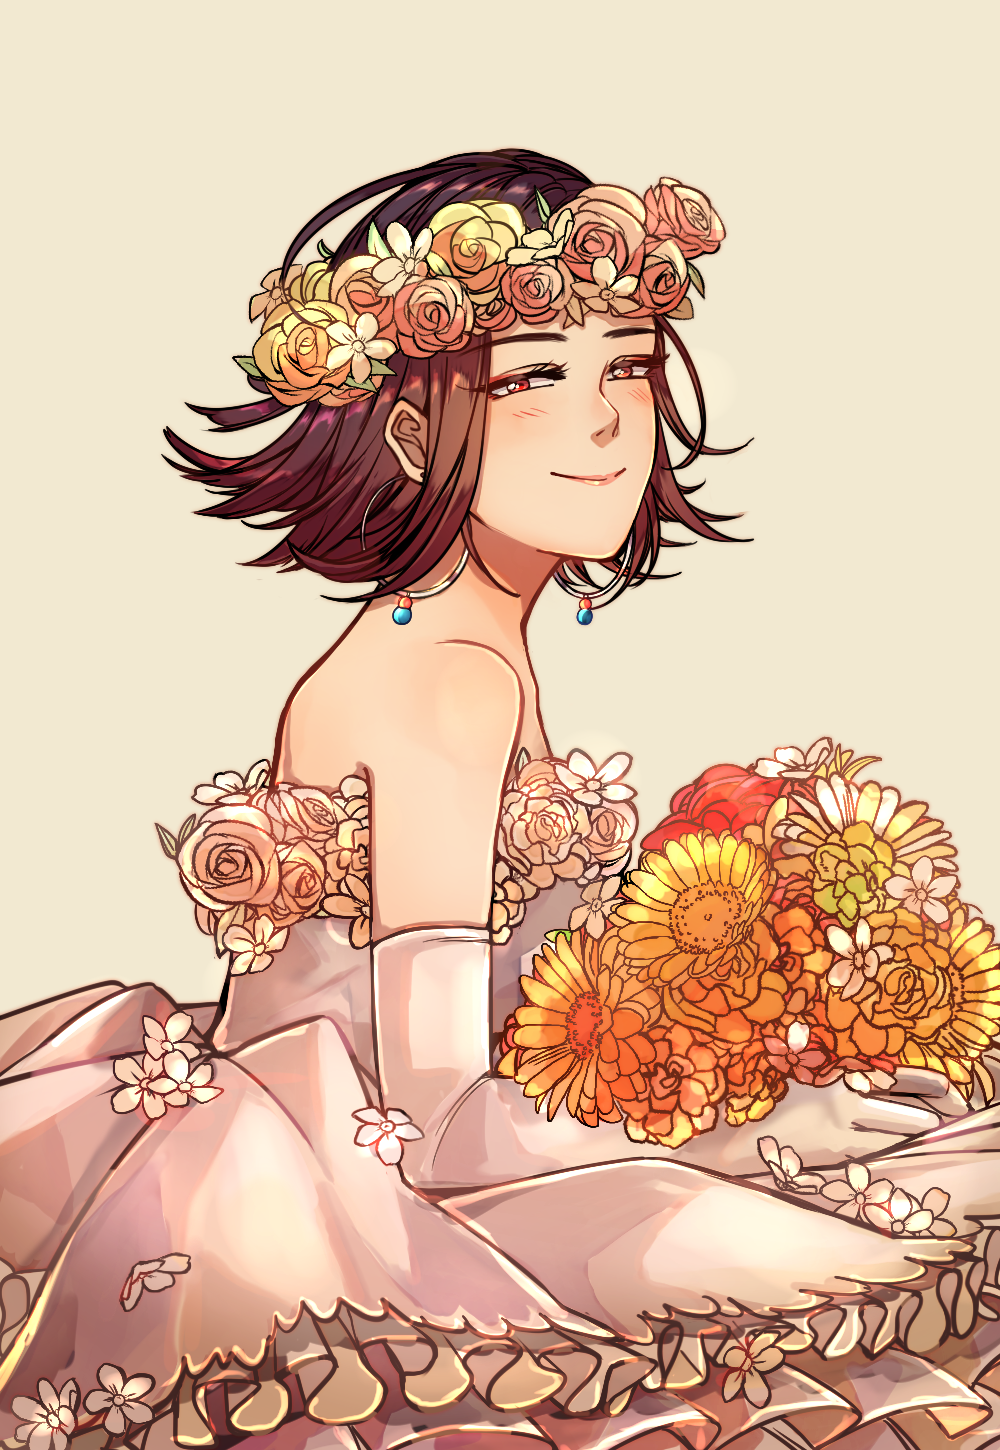 1girl araiguma_(gomipanda123) bare_shoulders beige_background brown_hair closed_mouth commentary_request dress dress_flower ear_piercing earrings elbow_gloves flipped_hair flower from_side gloves golden_kamuy hair_flower hair_ornament highres holding holding_flower hoop_earrings inkarmat jewelry lips looking_at_viewer looking_to_the_side medium_hair orange_flower piercing red_eyes red_flower rose simple_background sleeveless sleeveless_dress smile solo standing upper_body white_dress white_flower white_gloves white_rose